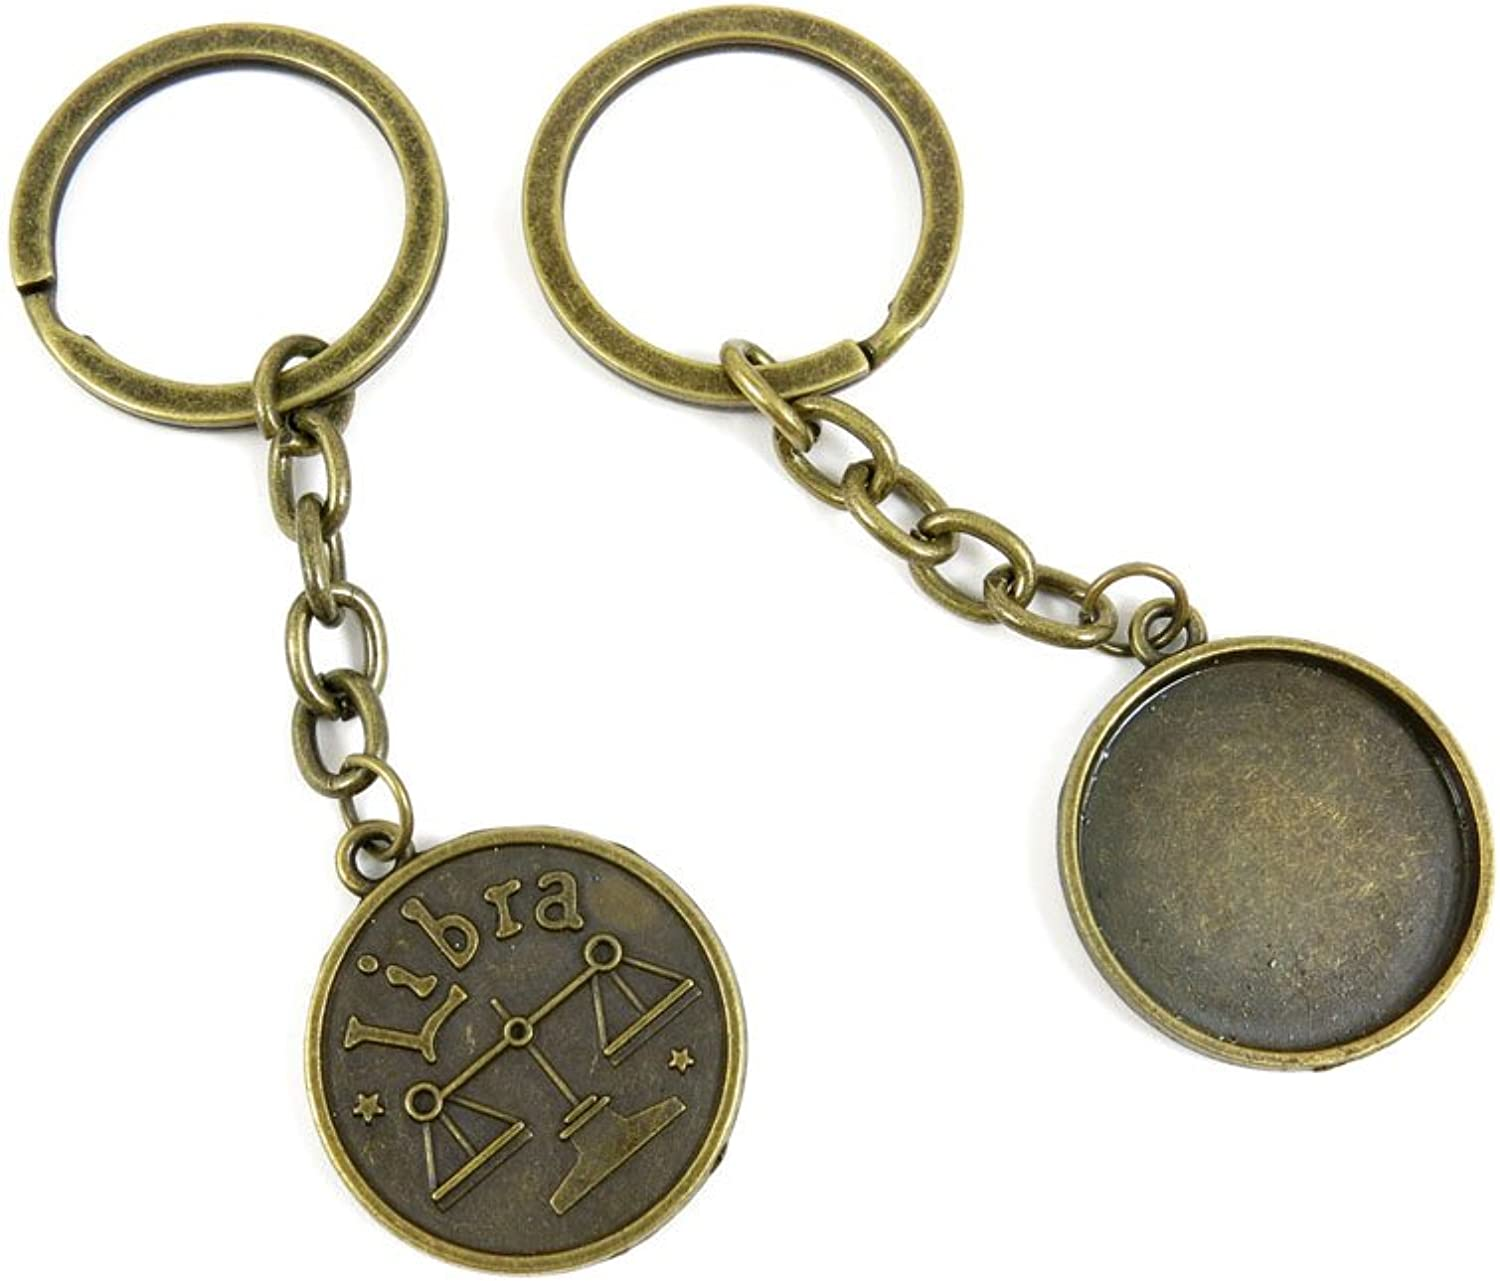 170 Pieces Fashion Jewelry Keyring Keychain Door Car Key Tag Ring Chain Supplier Supply Wholesale Bulk Lots R9FP2 Libra Cabochon Blank Base